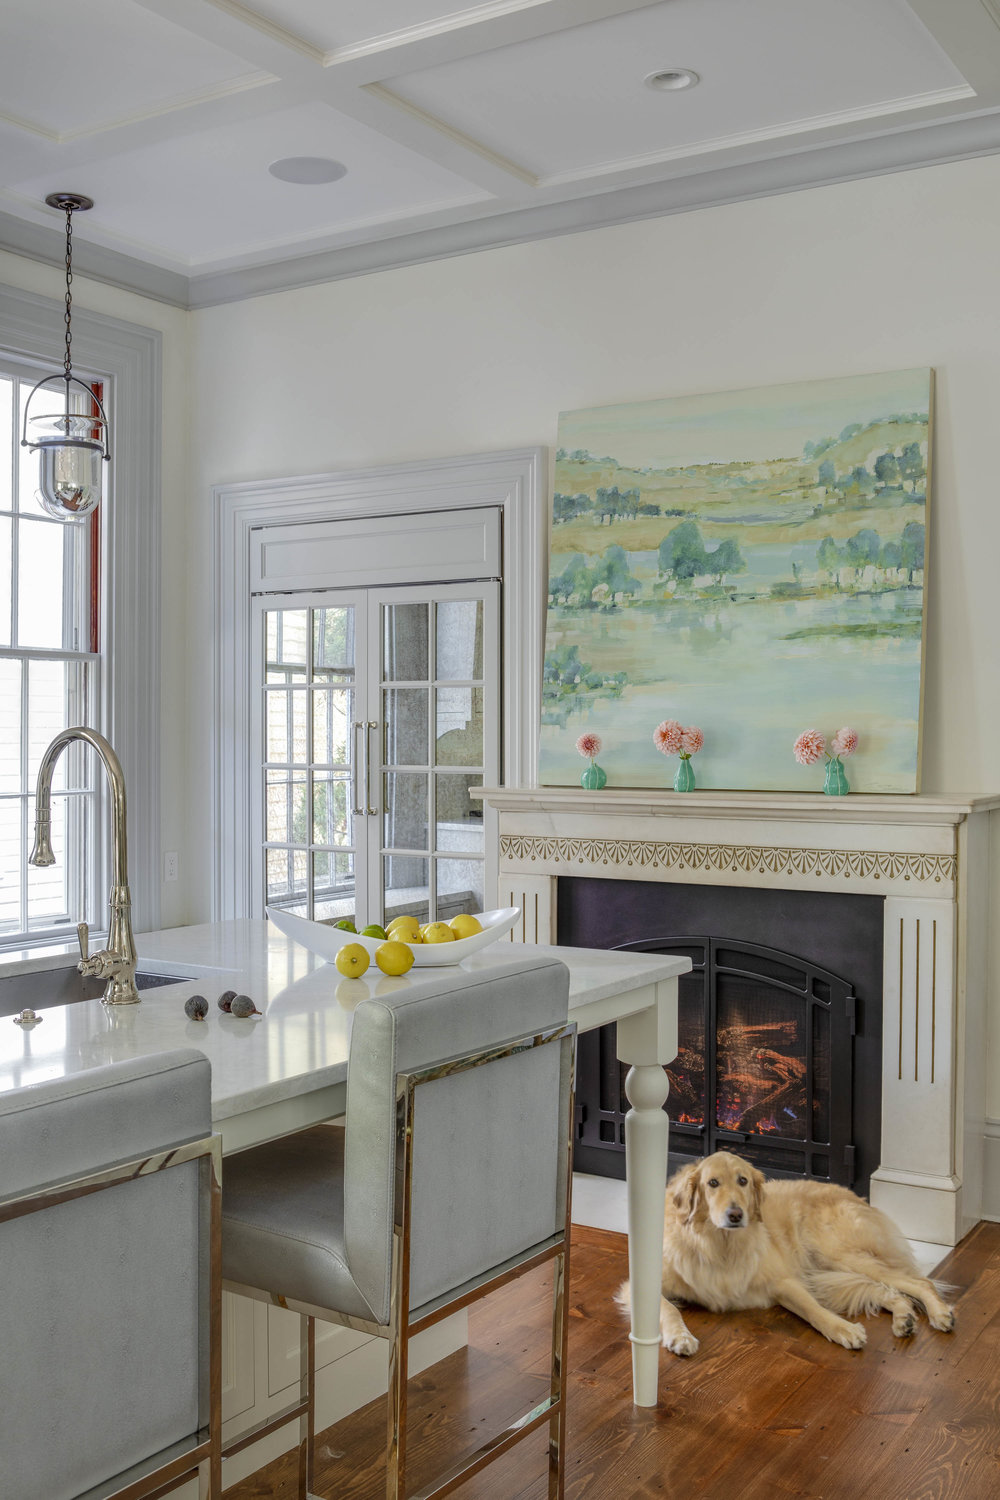 Benefit Street, Providence, Rhode Island, kitchen fireplace, kitchen island, island seating, fruit bowl, golden retriever, painting over fireplace, kitchen design, interior design, jocelyn chiappone, digs design, digs interior design, digs design company